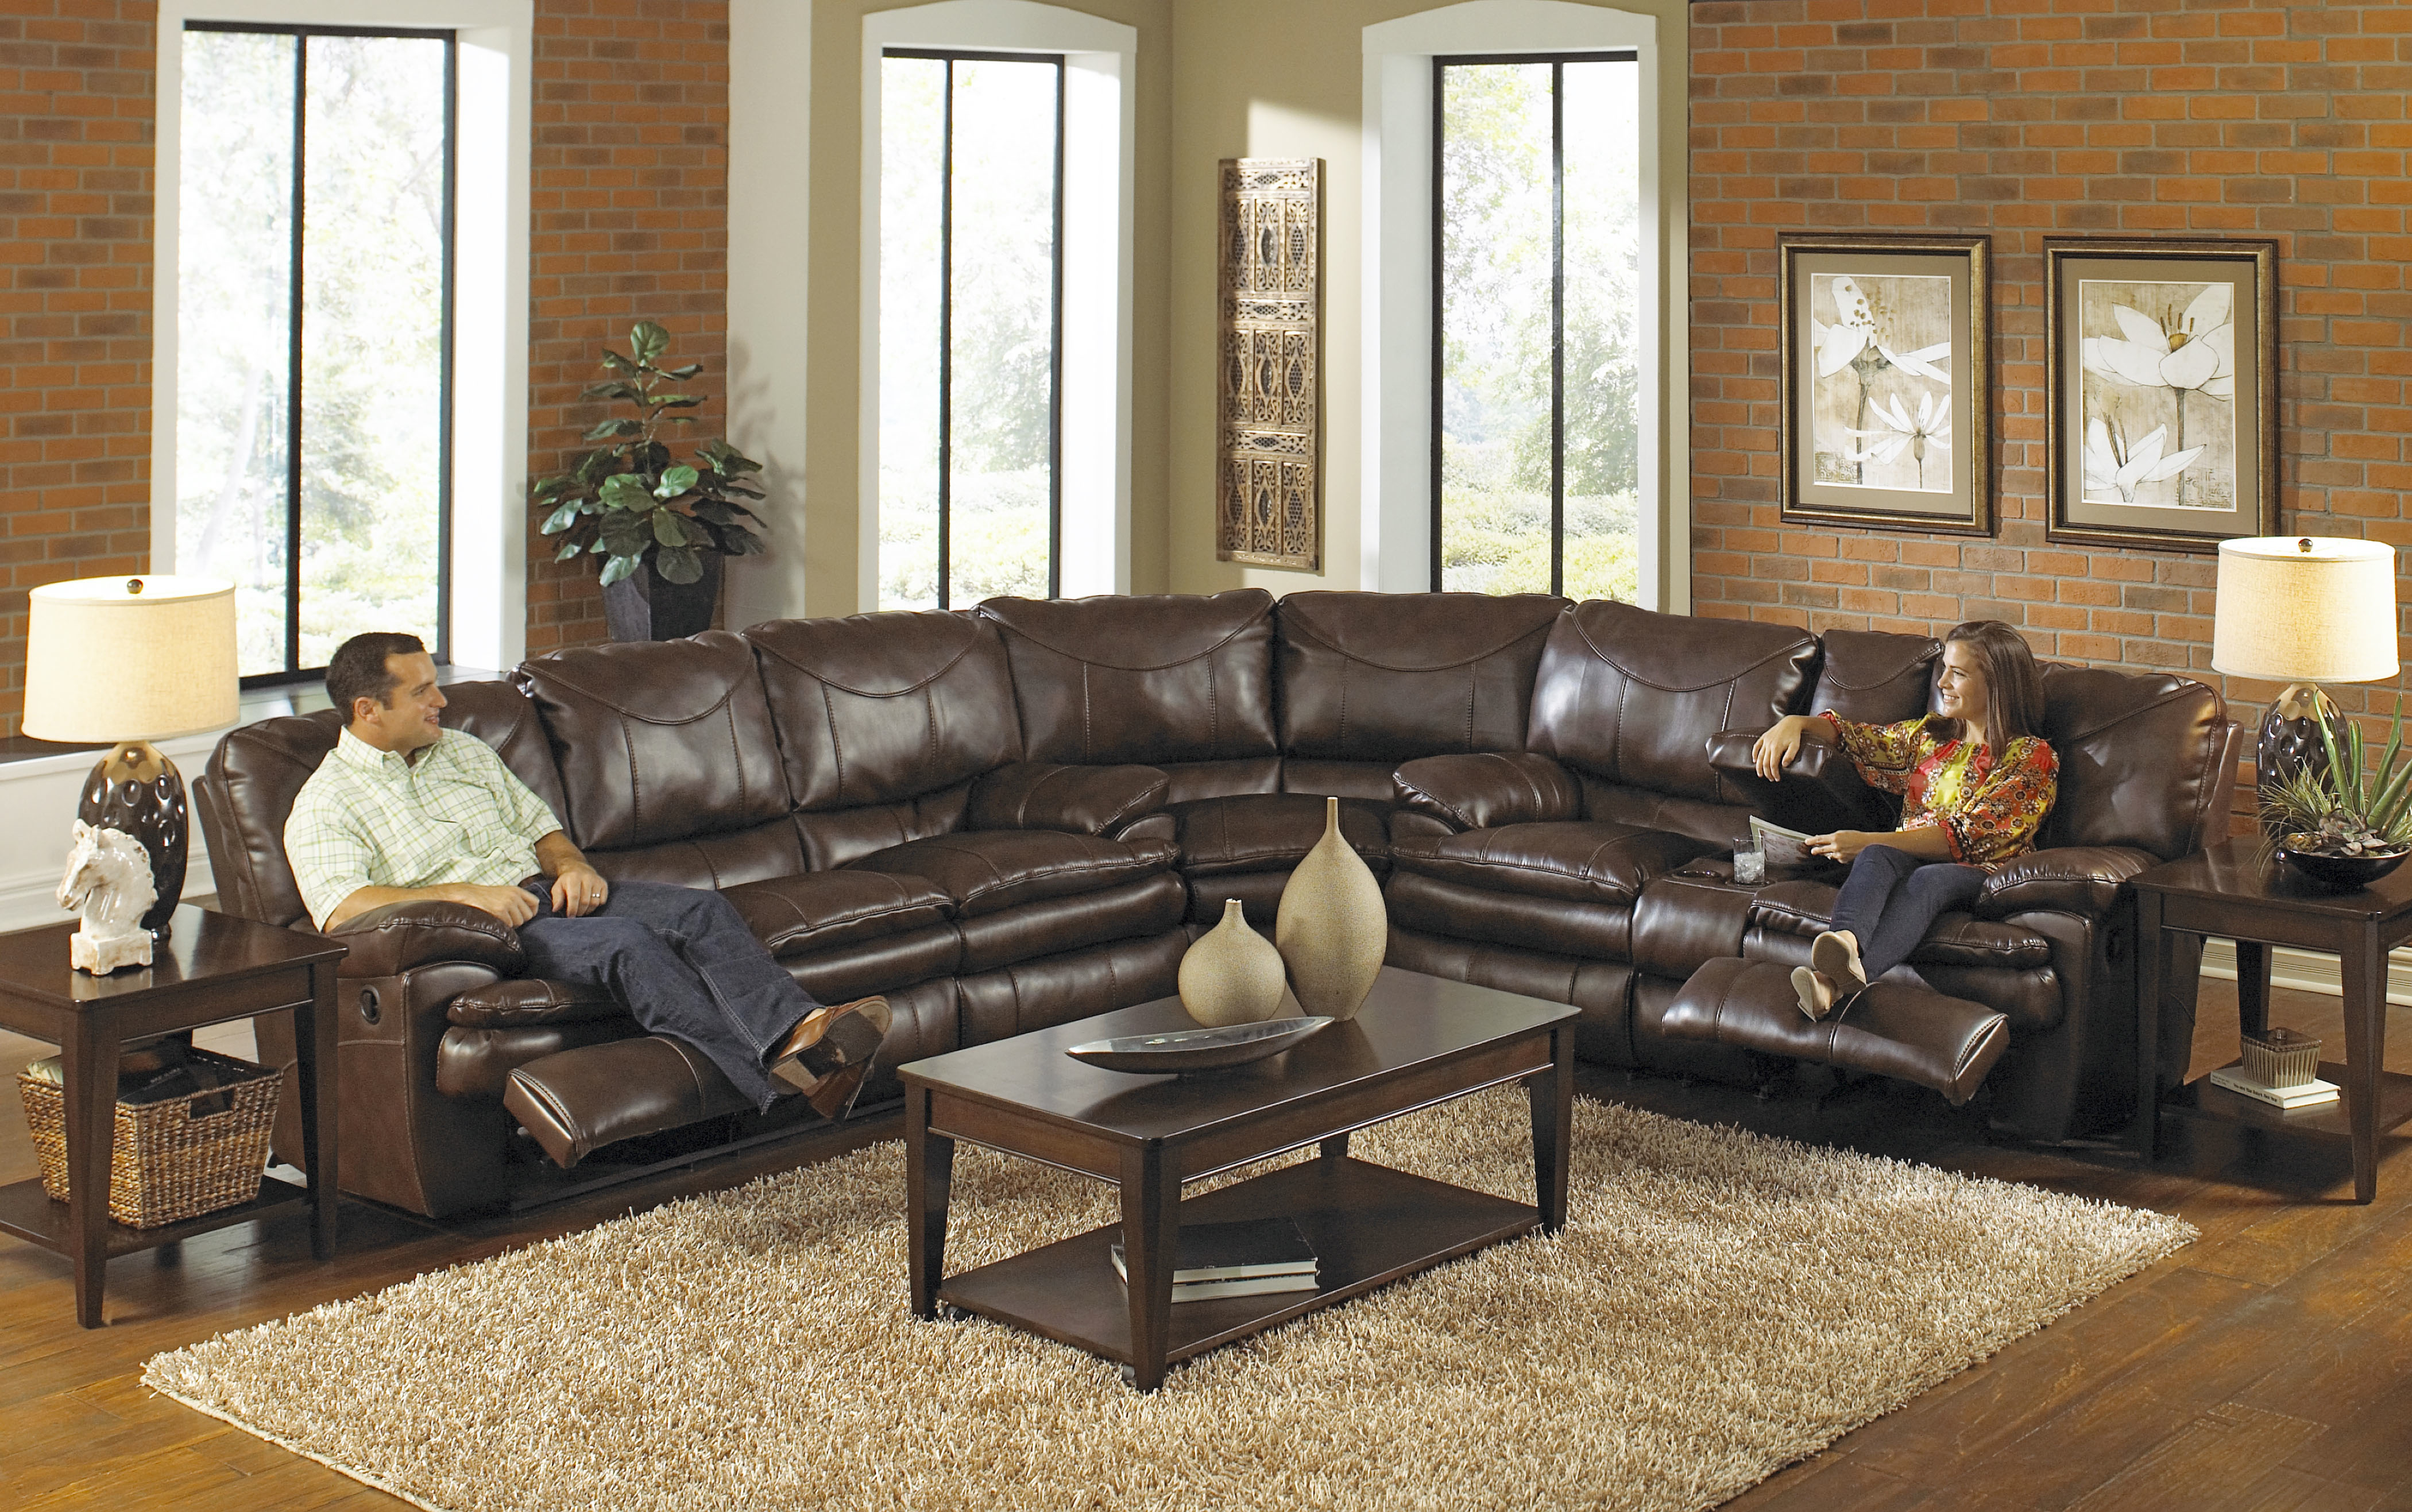 Buy large sectional reclining sectional sofas oversized sectional couch